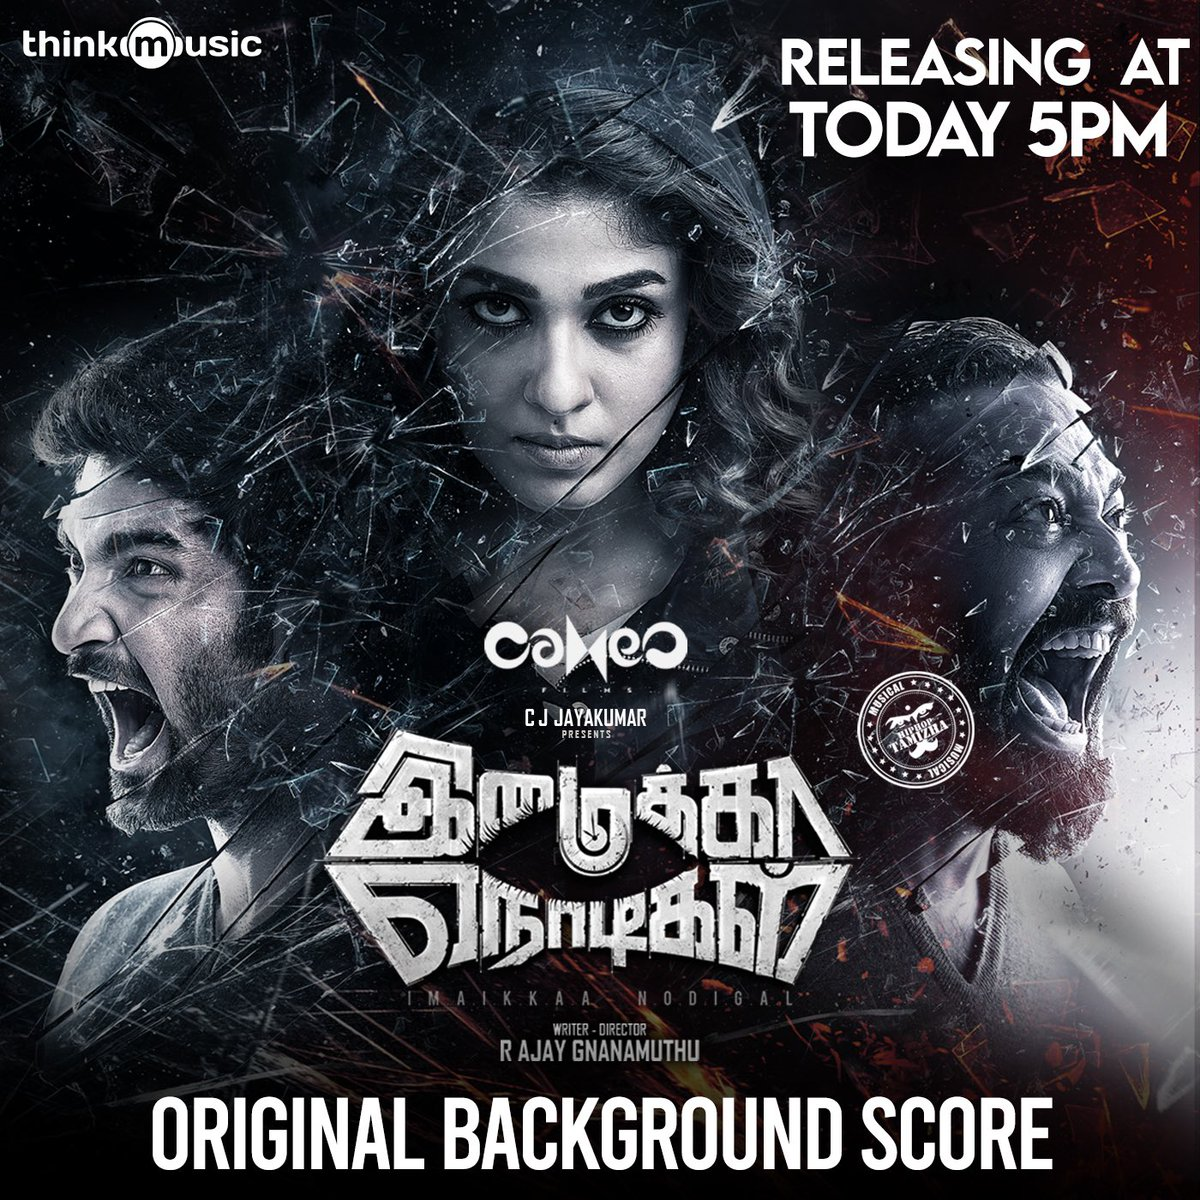 Surprise folks, The Much Awaited Background scores of @hiphoptamizha 's #ImaikkaaNodigal releasing today at 5pm !!   #Nayanthara @Atharvaamurali @anuragkashyap72 @AjayGnanamuthu @CameoFilmsIndia https://t.co/mZO0a3aDnd